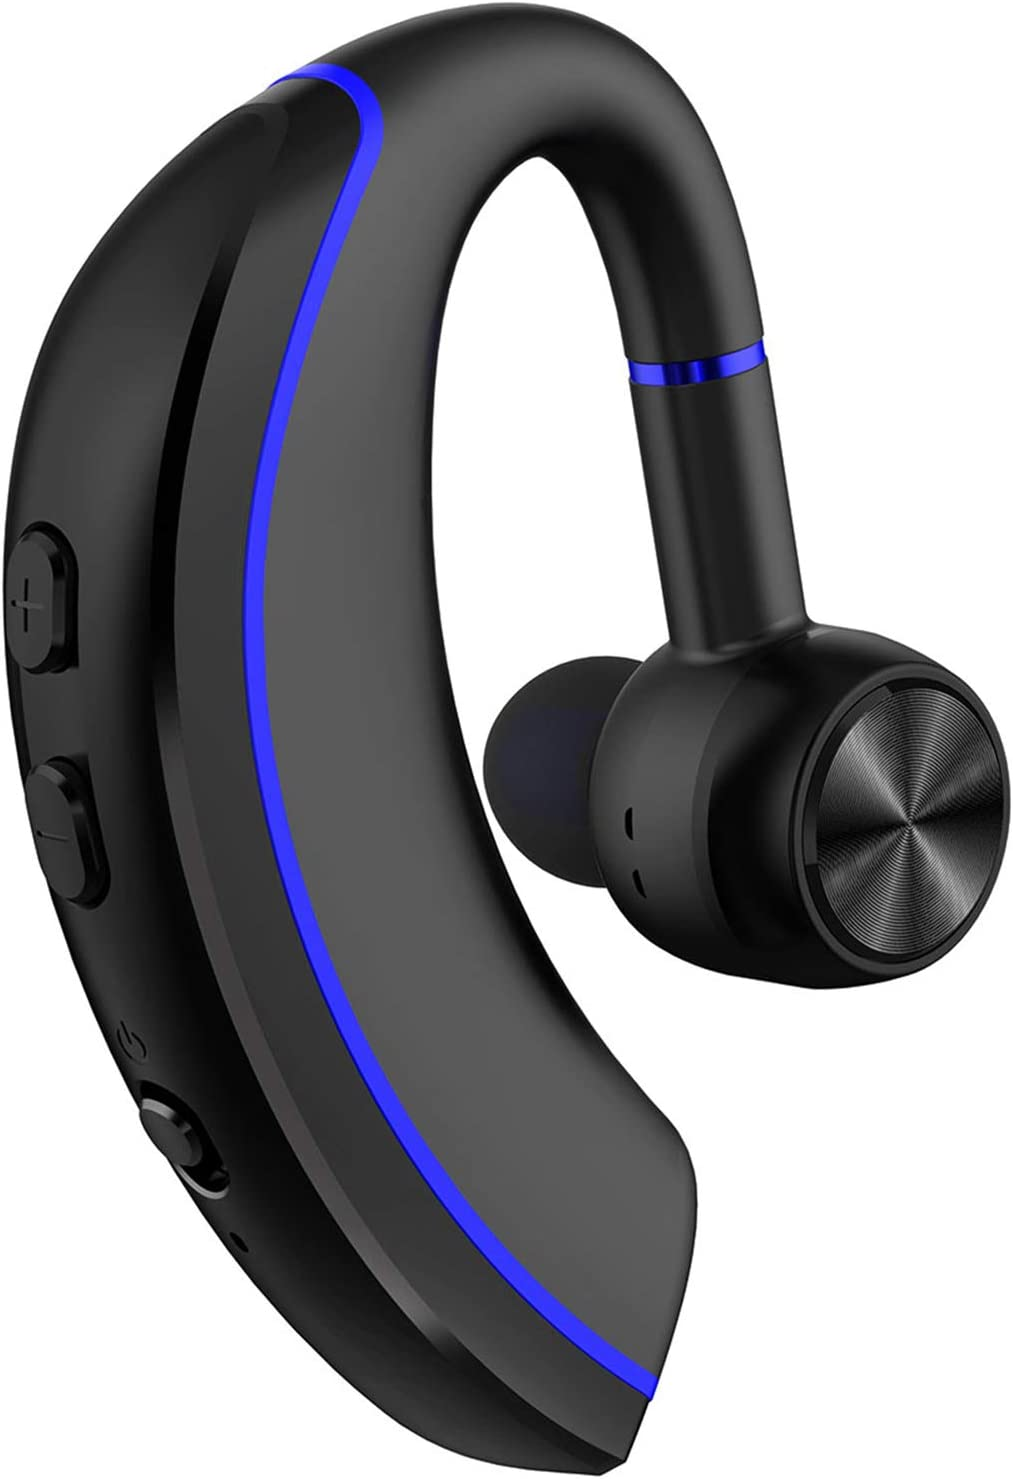 Yamipho Bluetooth Headset, Bluetooth 5.0 Handsfree Earpiece 12h Talking Time with Mic, Business Headphones Wireless Earphones Fits Left/Right in-Ear Driving Earbuds for iPhone Android Laptop (Blue)